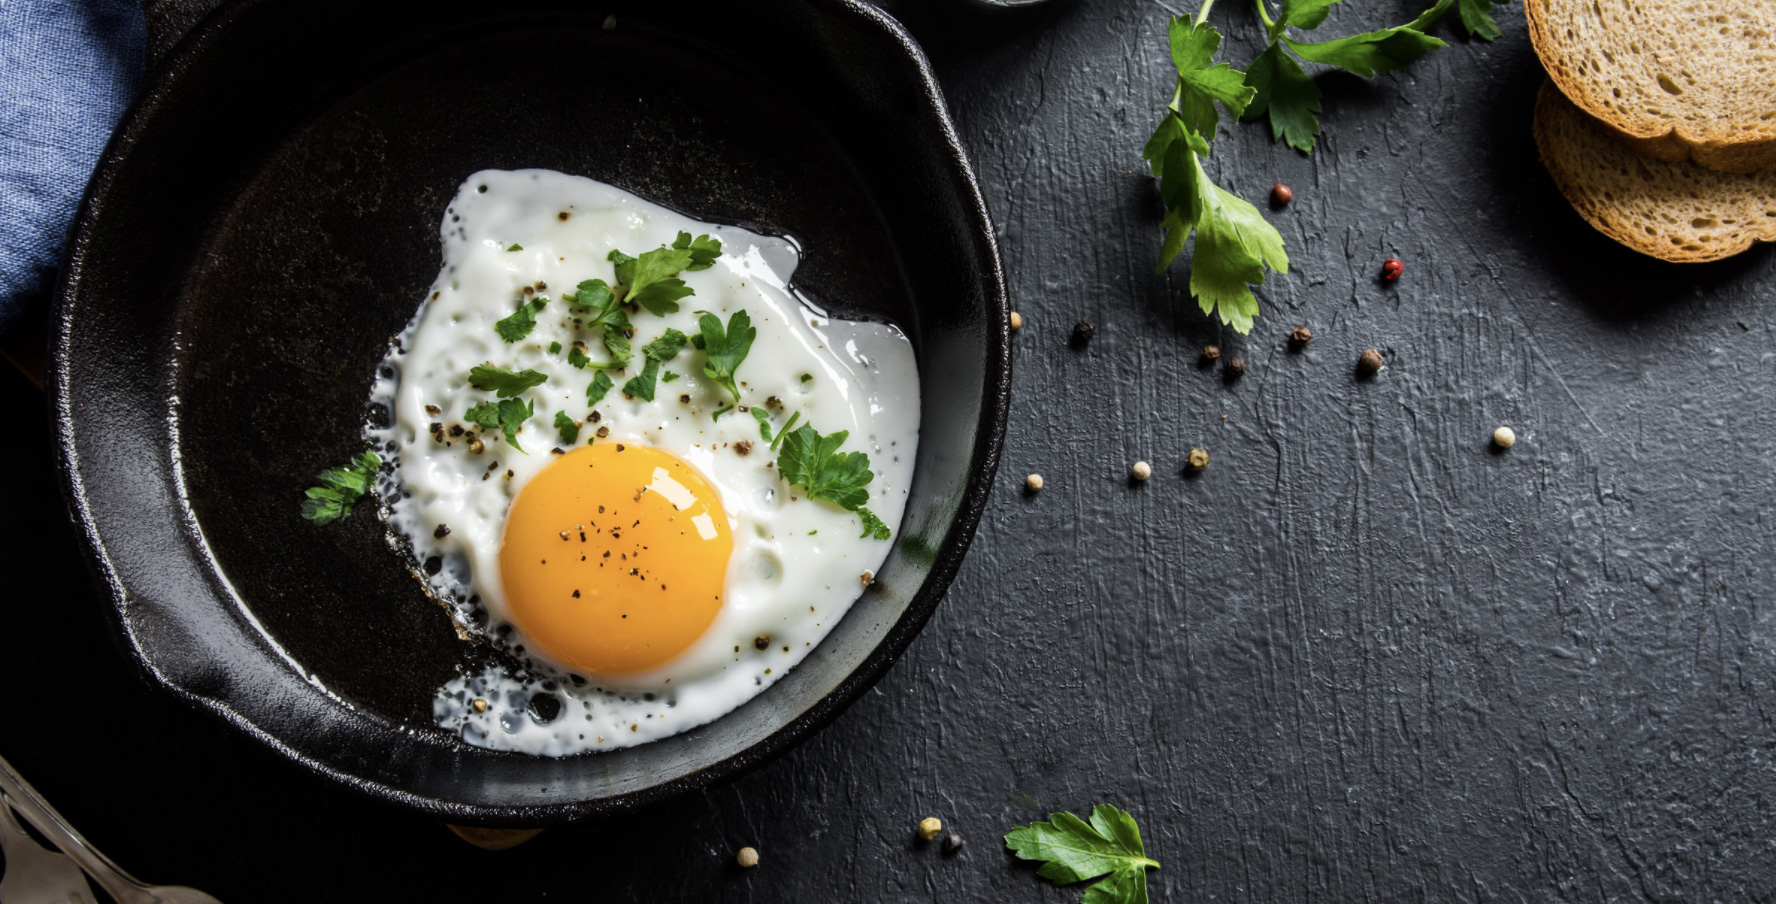 Image - Canva, eggs in a pan